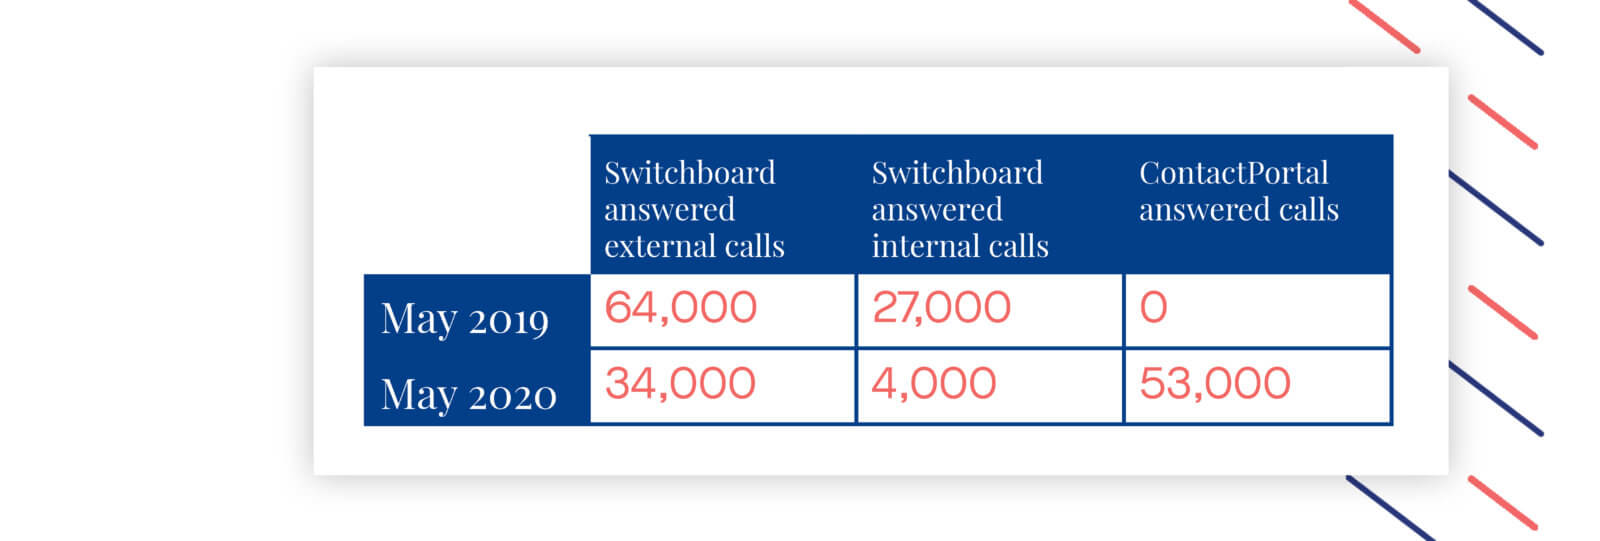 ContactPortal improves swithchboard performance numbers